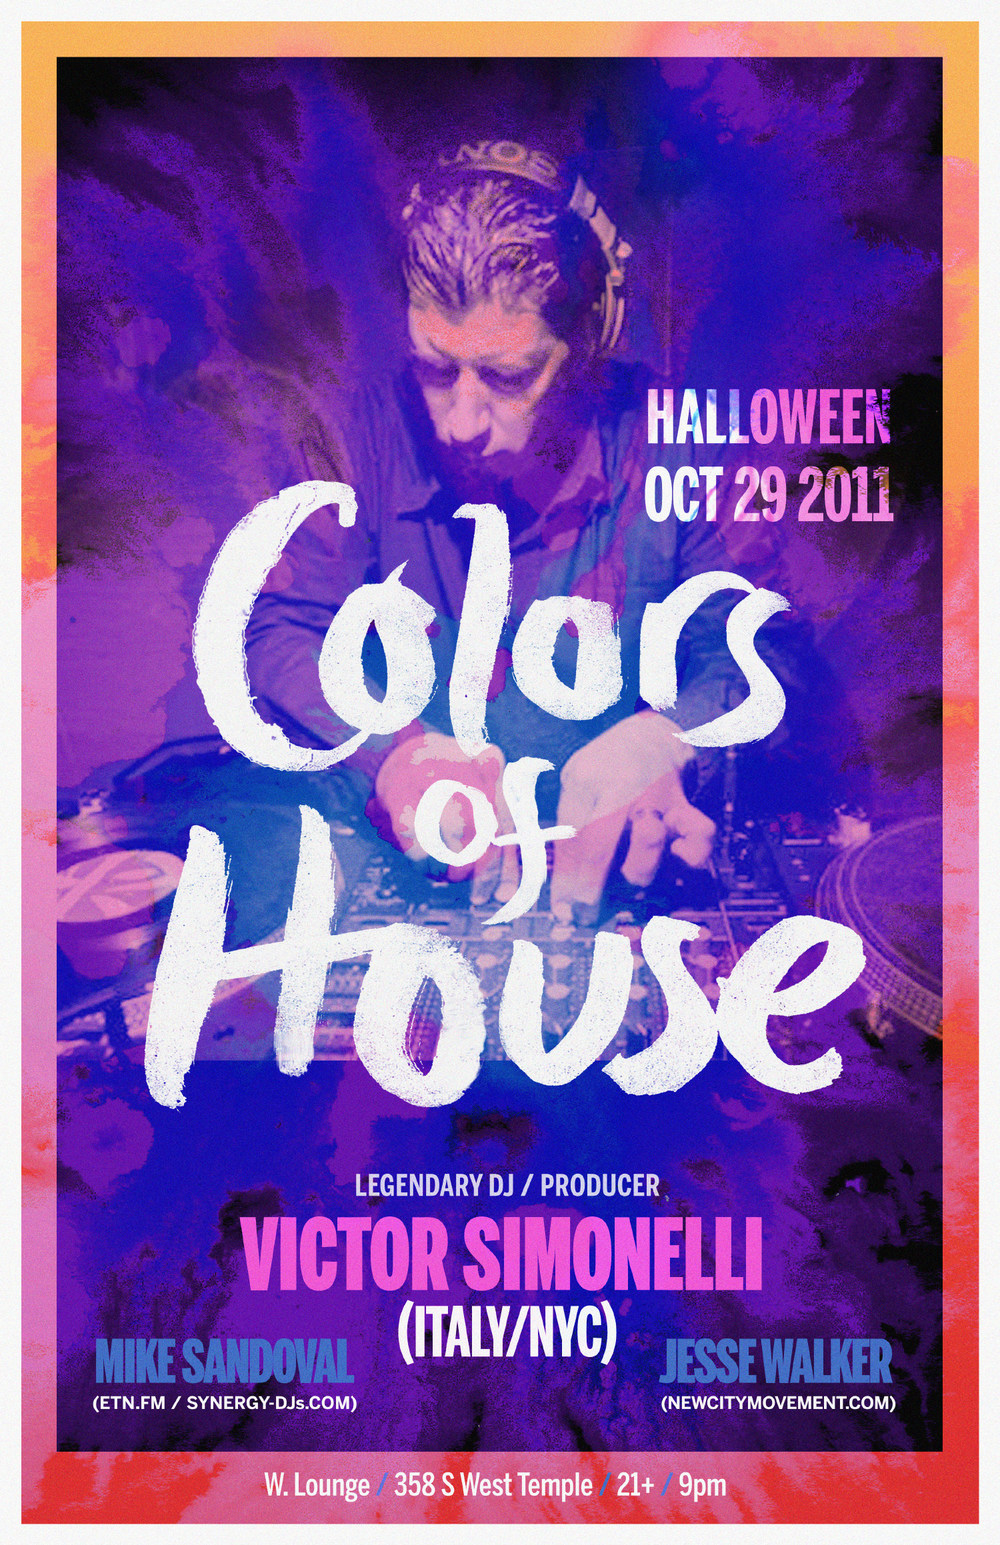 ColorsOfHouse_Oct2011 copy.jpg